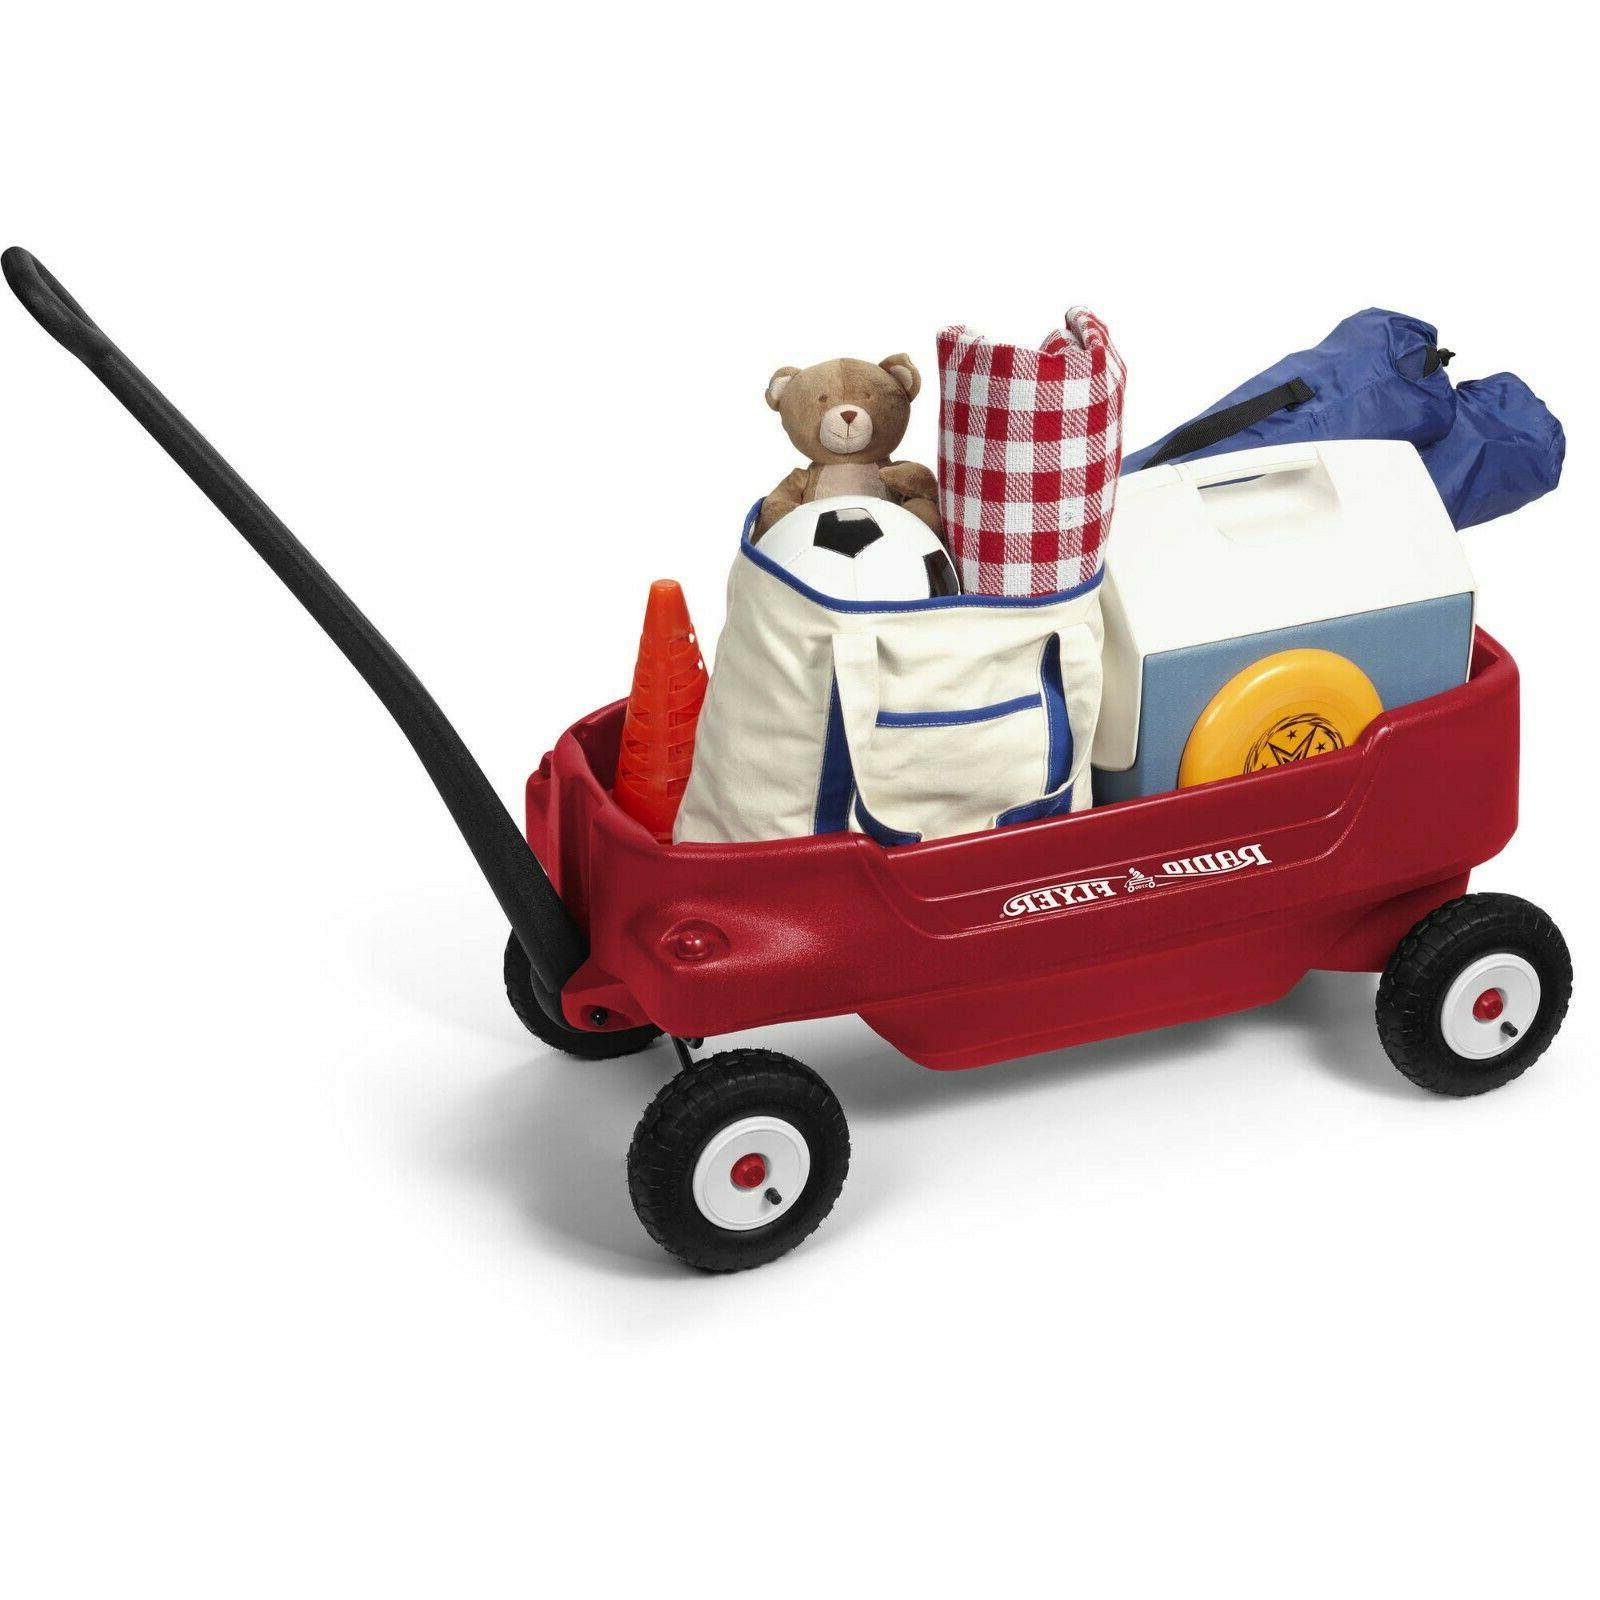 Radio Flyer, Deluxe All-Terrain Pathfinder Wagon with Canopy Air Step2